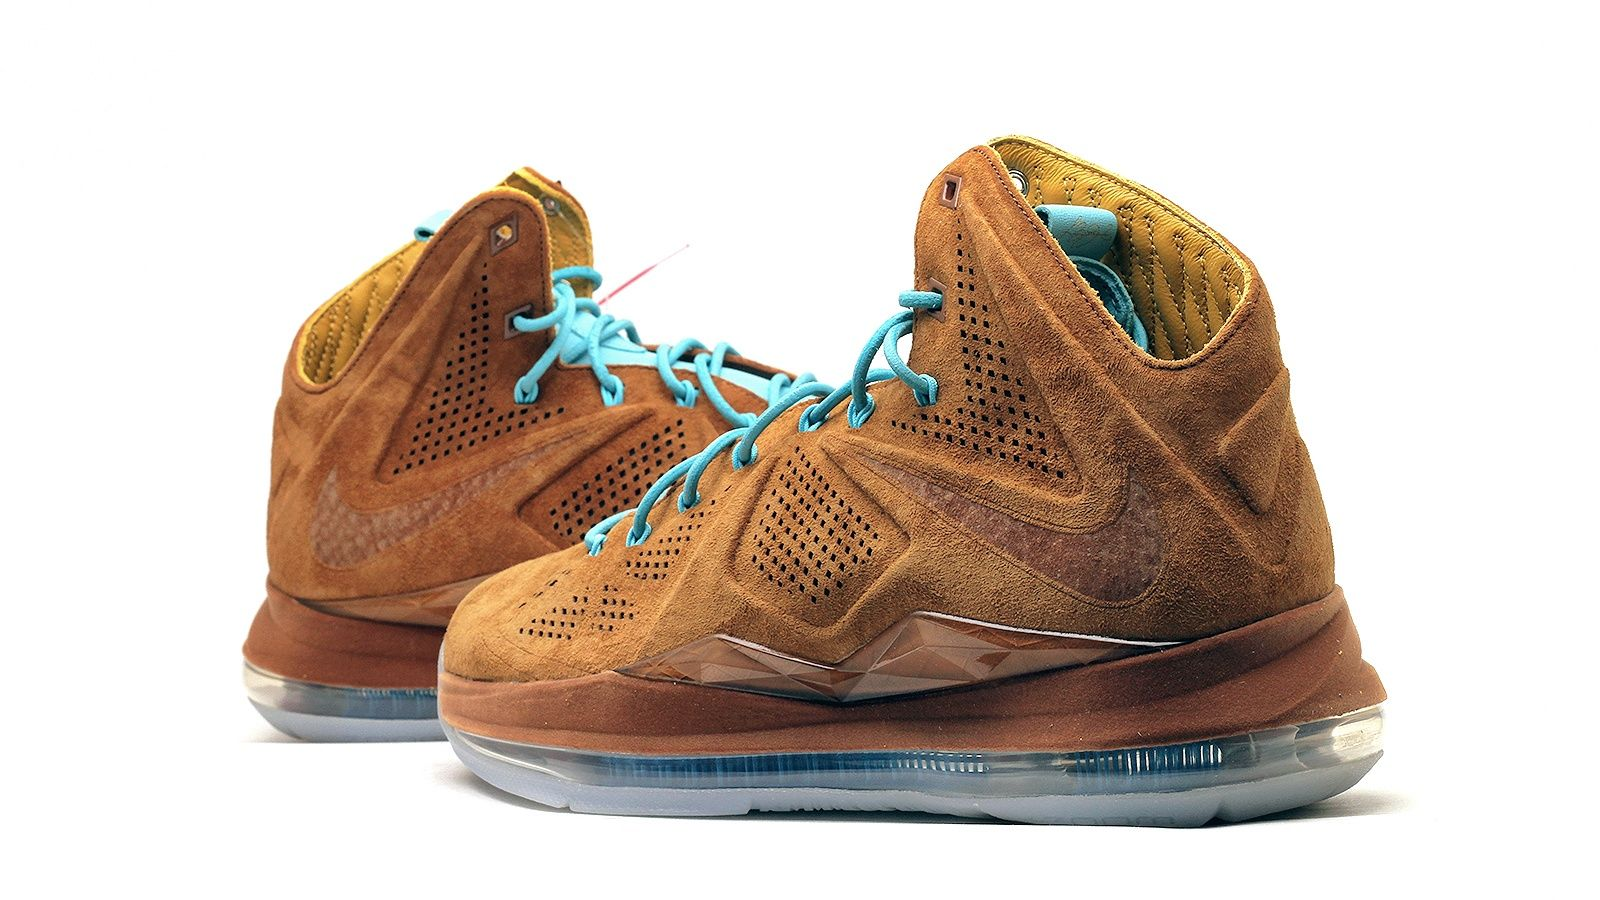 Returning to the premium construction that made the LeBron X EXT Cork QS so  unique,